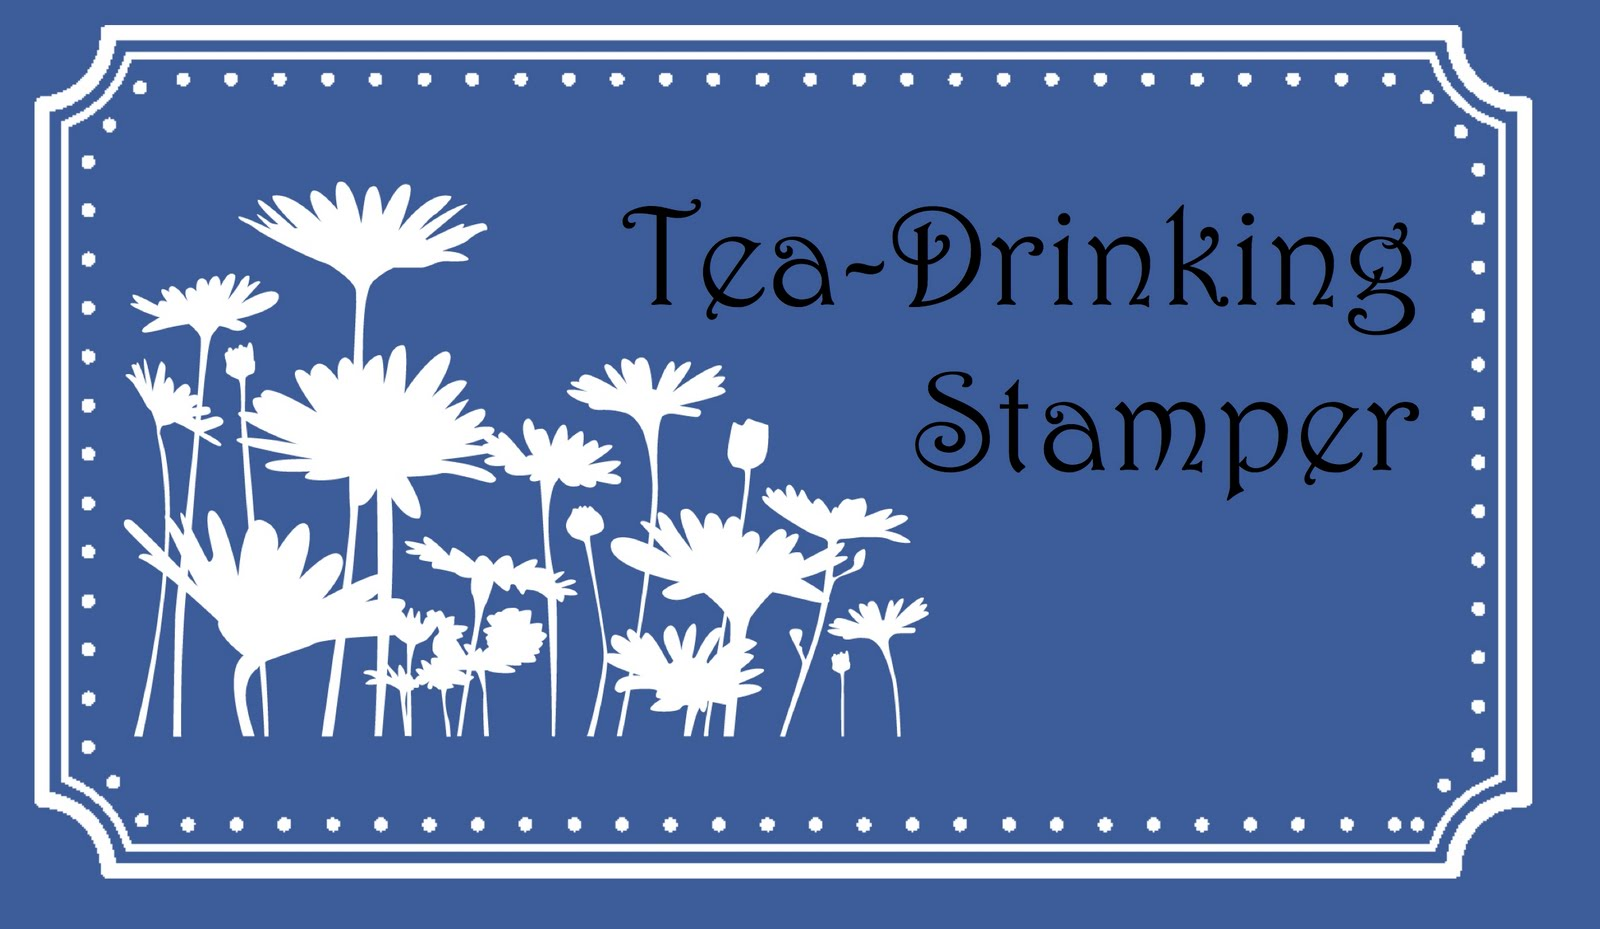 tea-drinking stamper